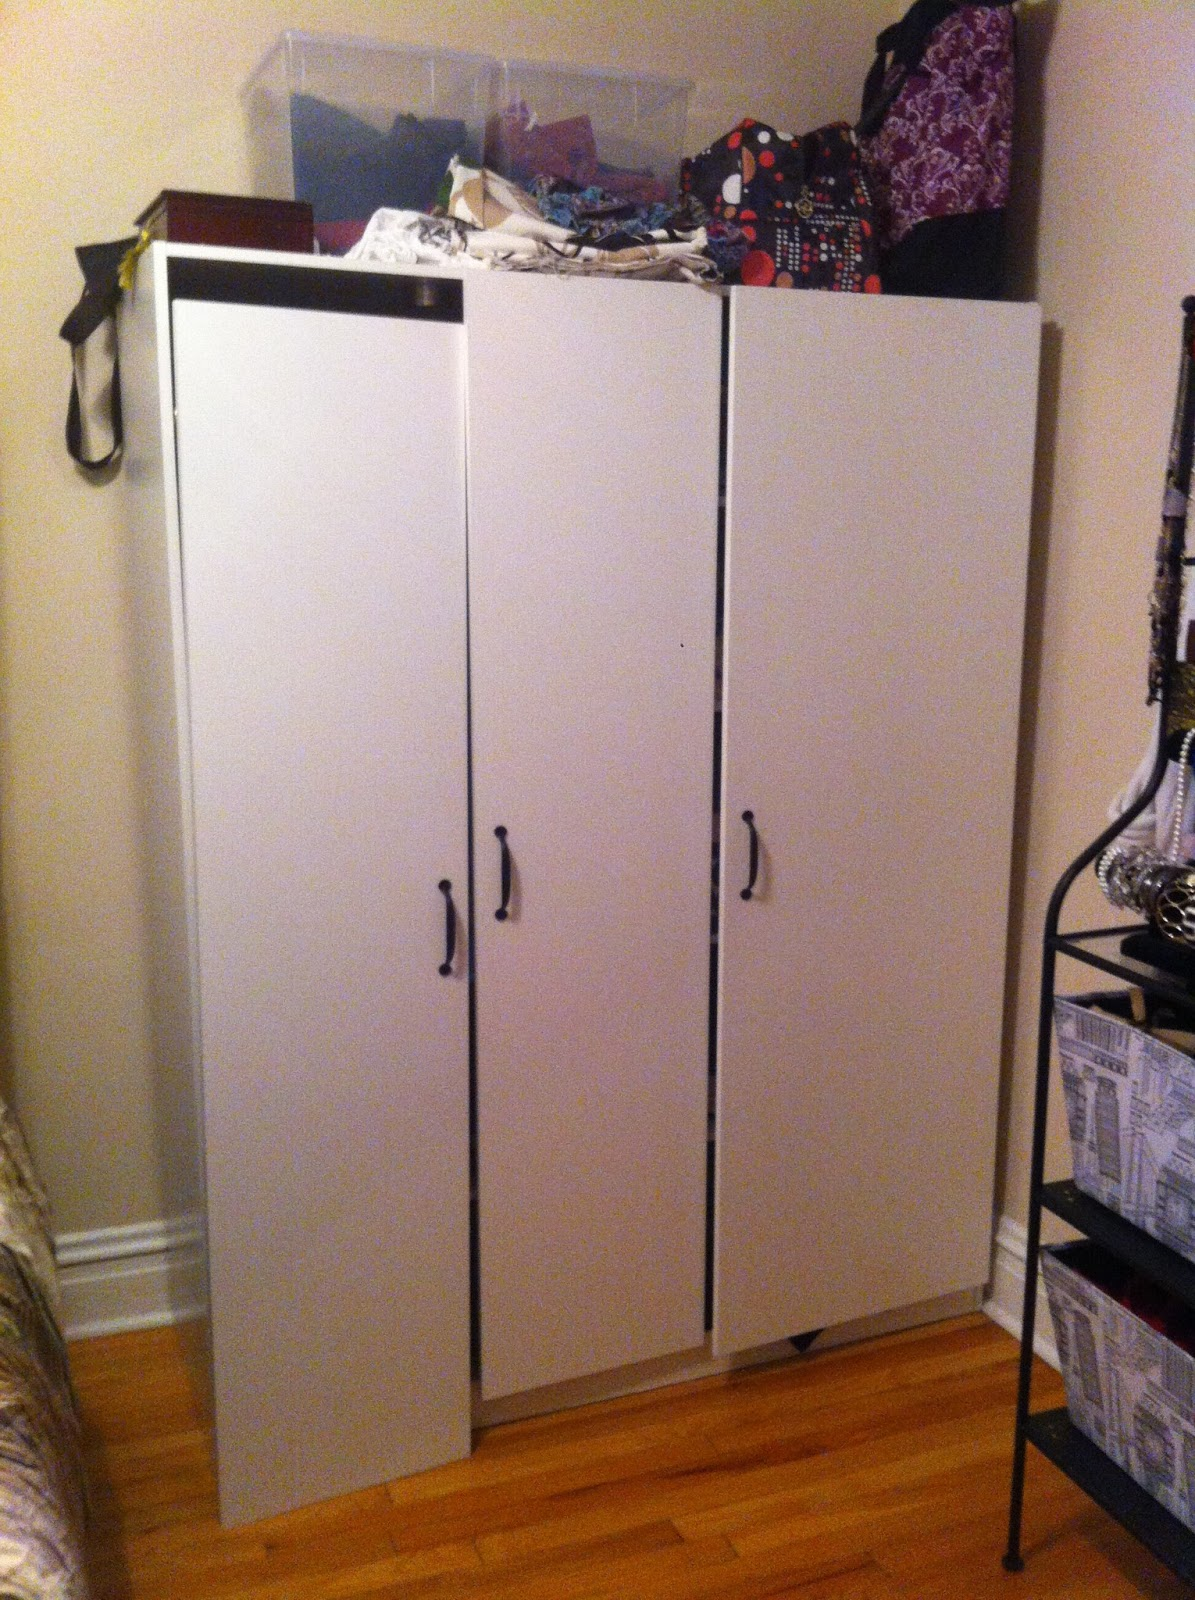 Tinted Glass Cabinet Doors Ikea ~ Living Large in Small Spaces Latest IKEA hack DOMBAS Wardrobe